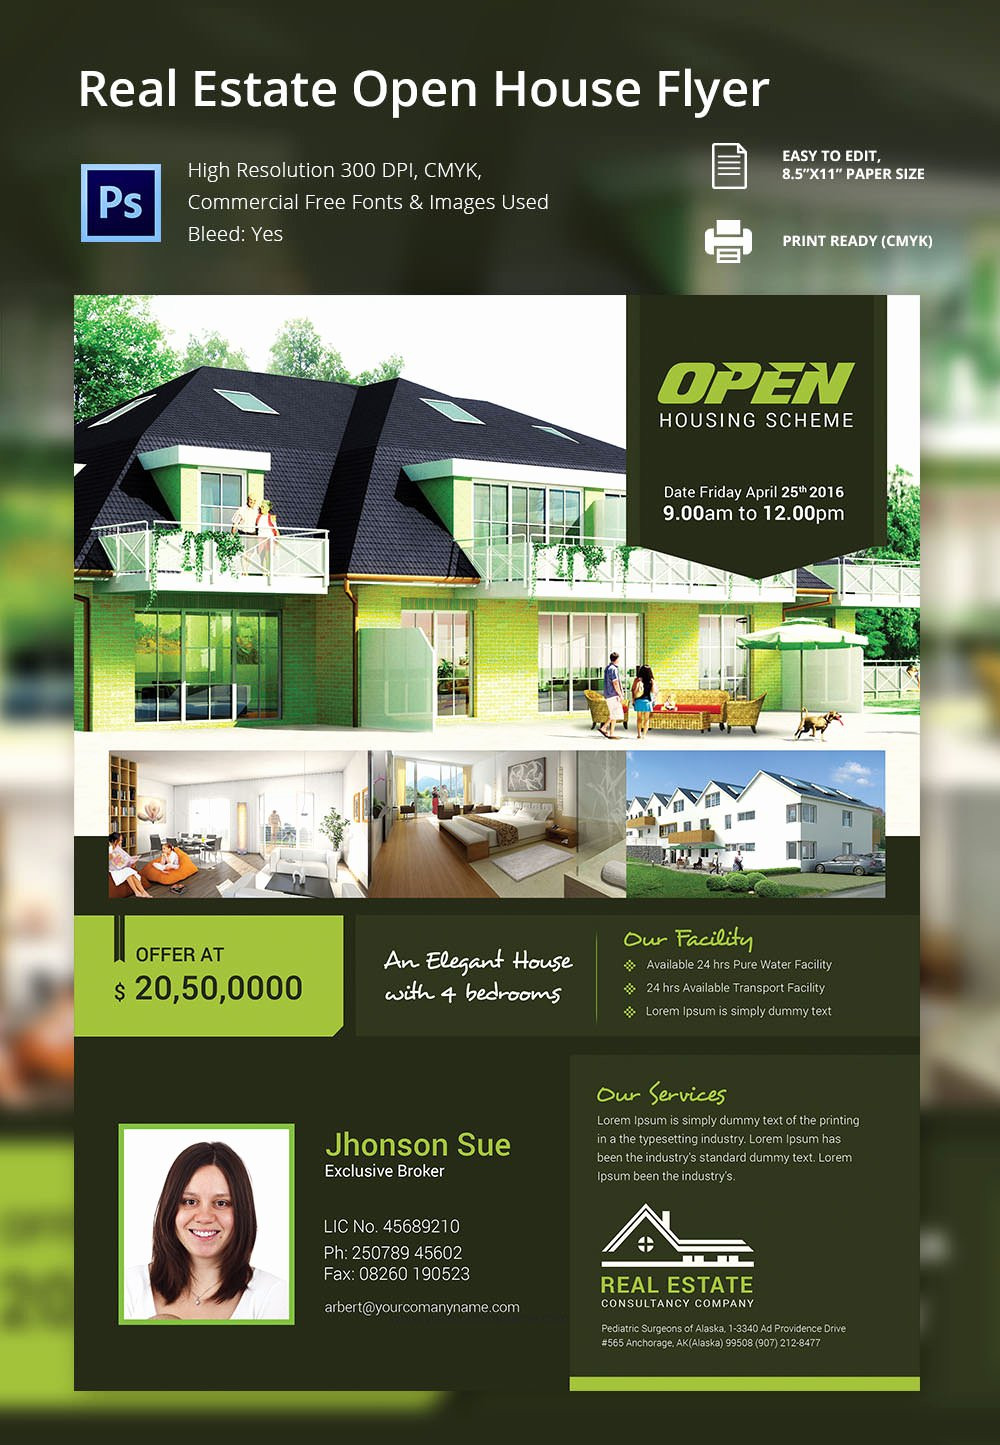 Open House Brochure Template Luxury Open House Flyer Free Psd format Download Brochure